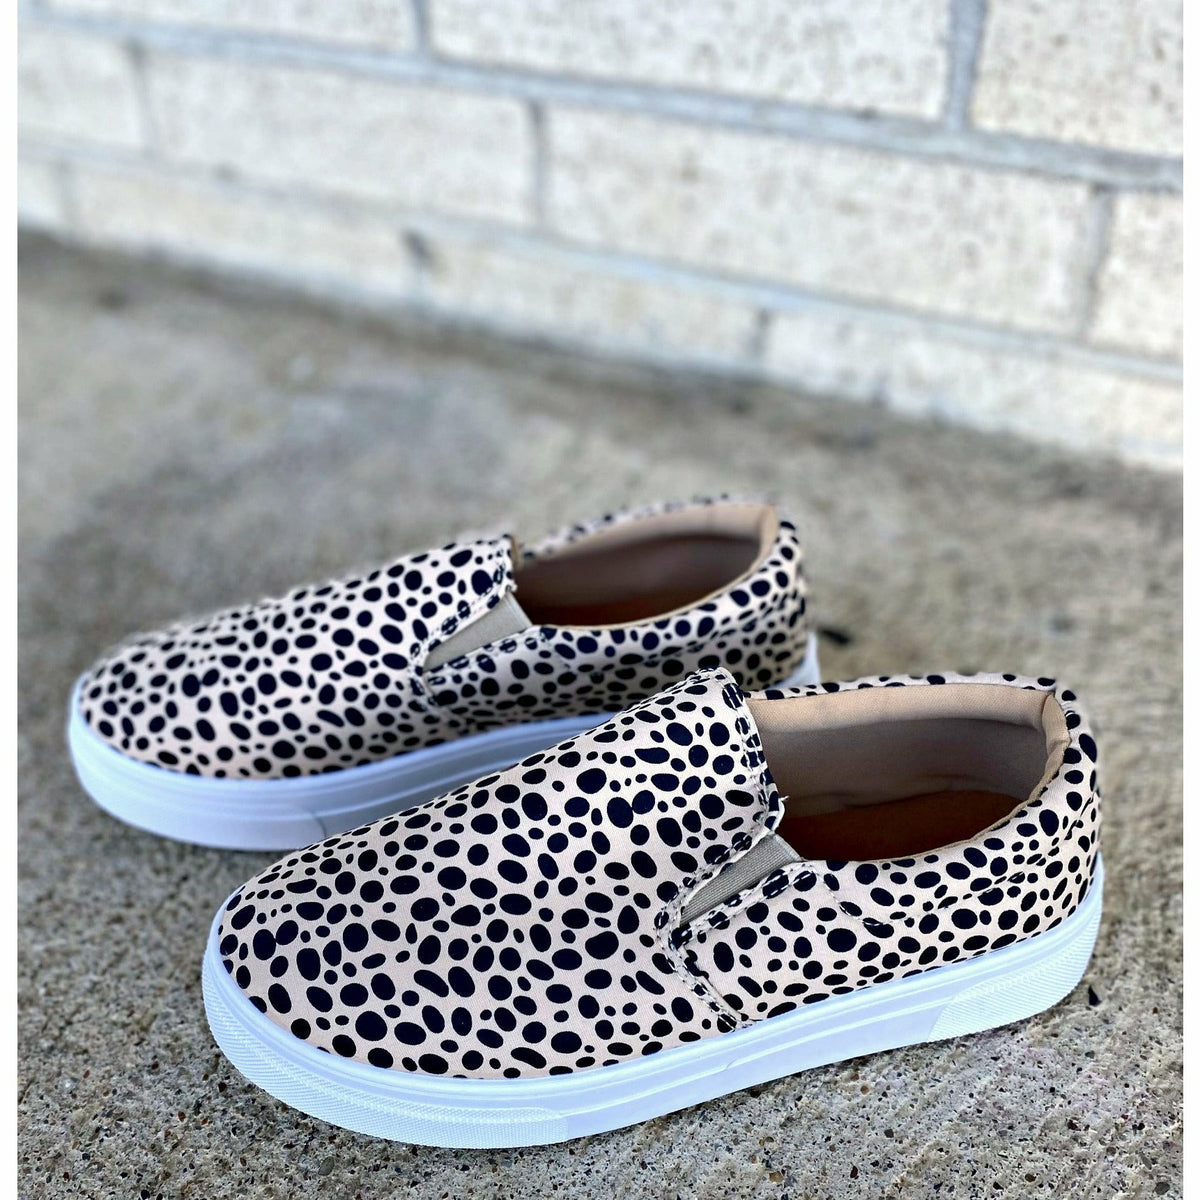 dalmation leopard slip on sneakers